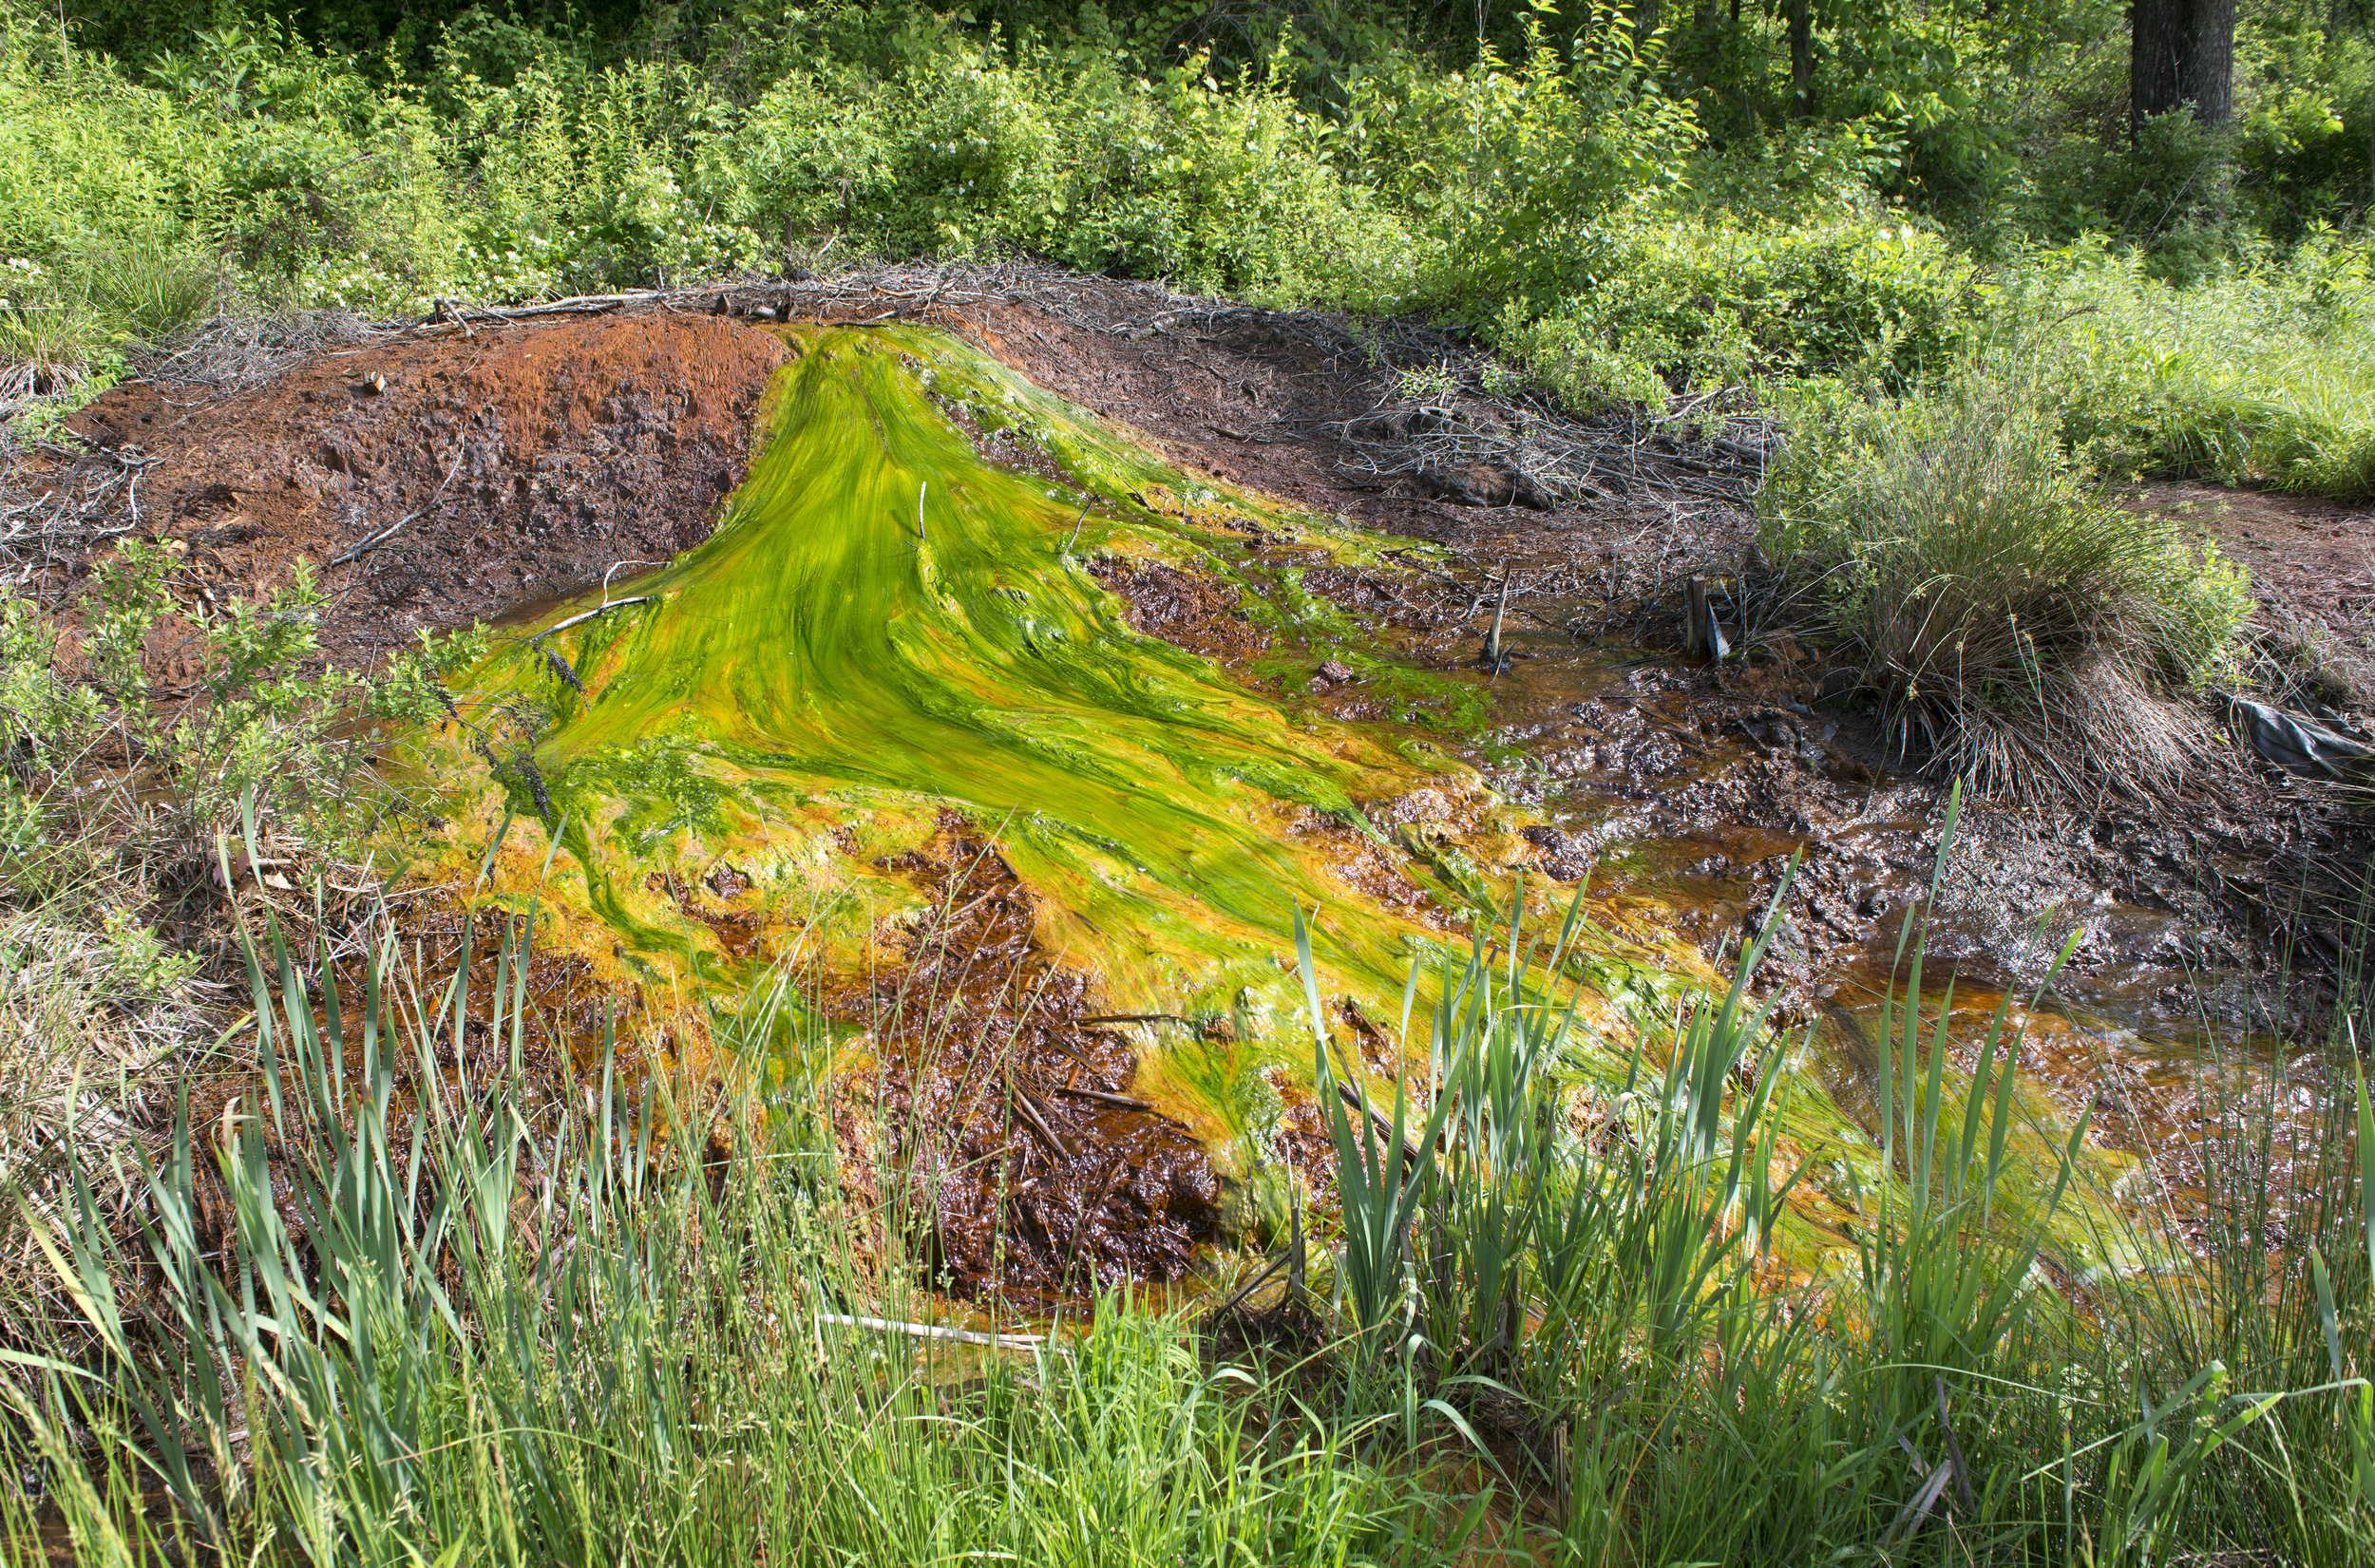 Bubbling acid mine seep at Carbondale, Ohio red and orange is iron oxide deposits, green streaks are bacteria and algae